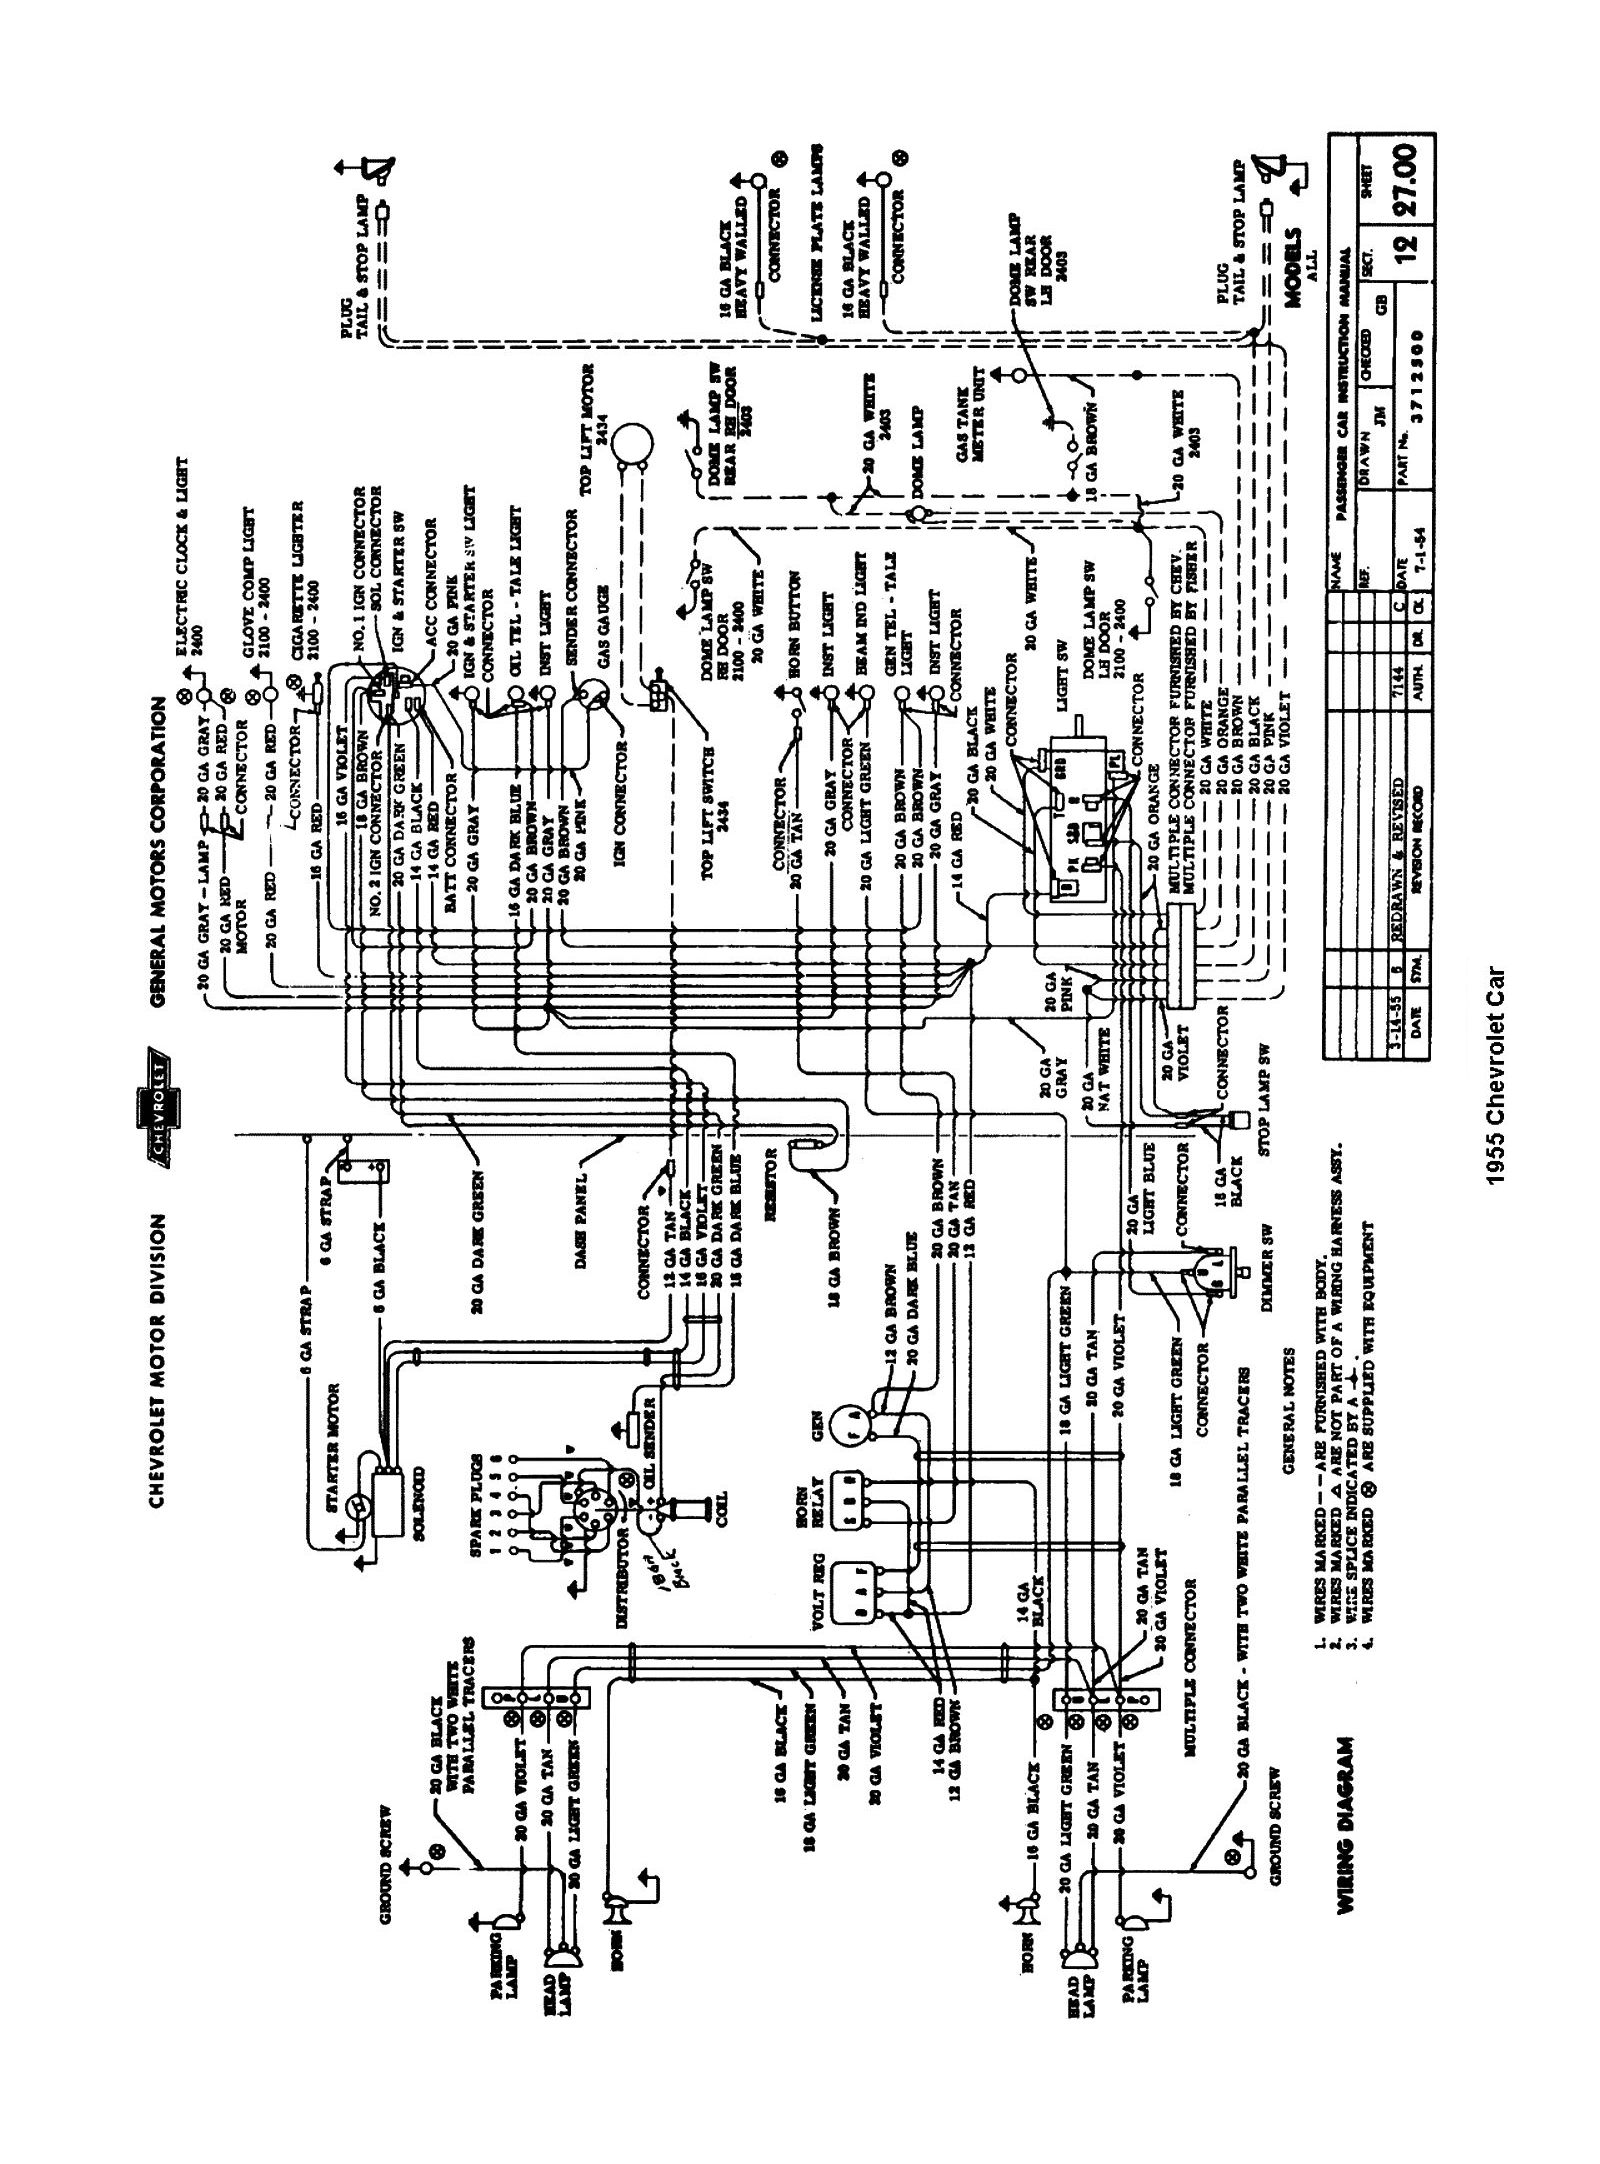 1955 1959 chevy truck wiring diagram html